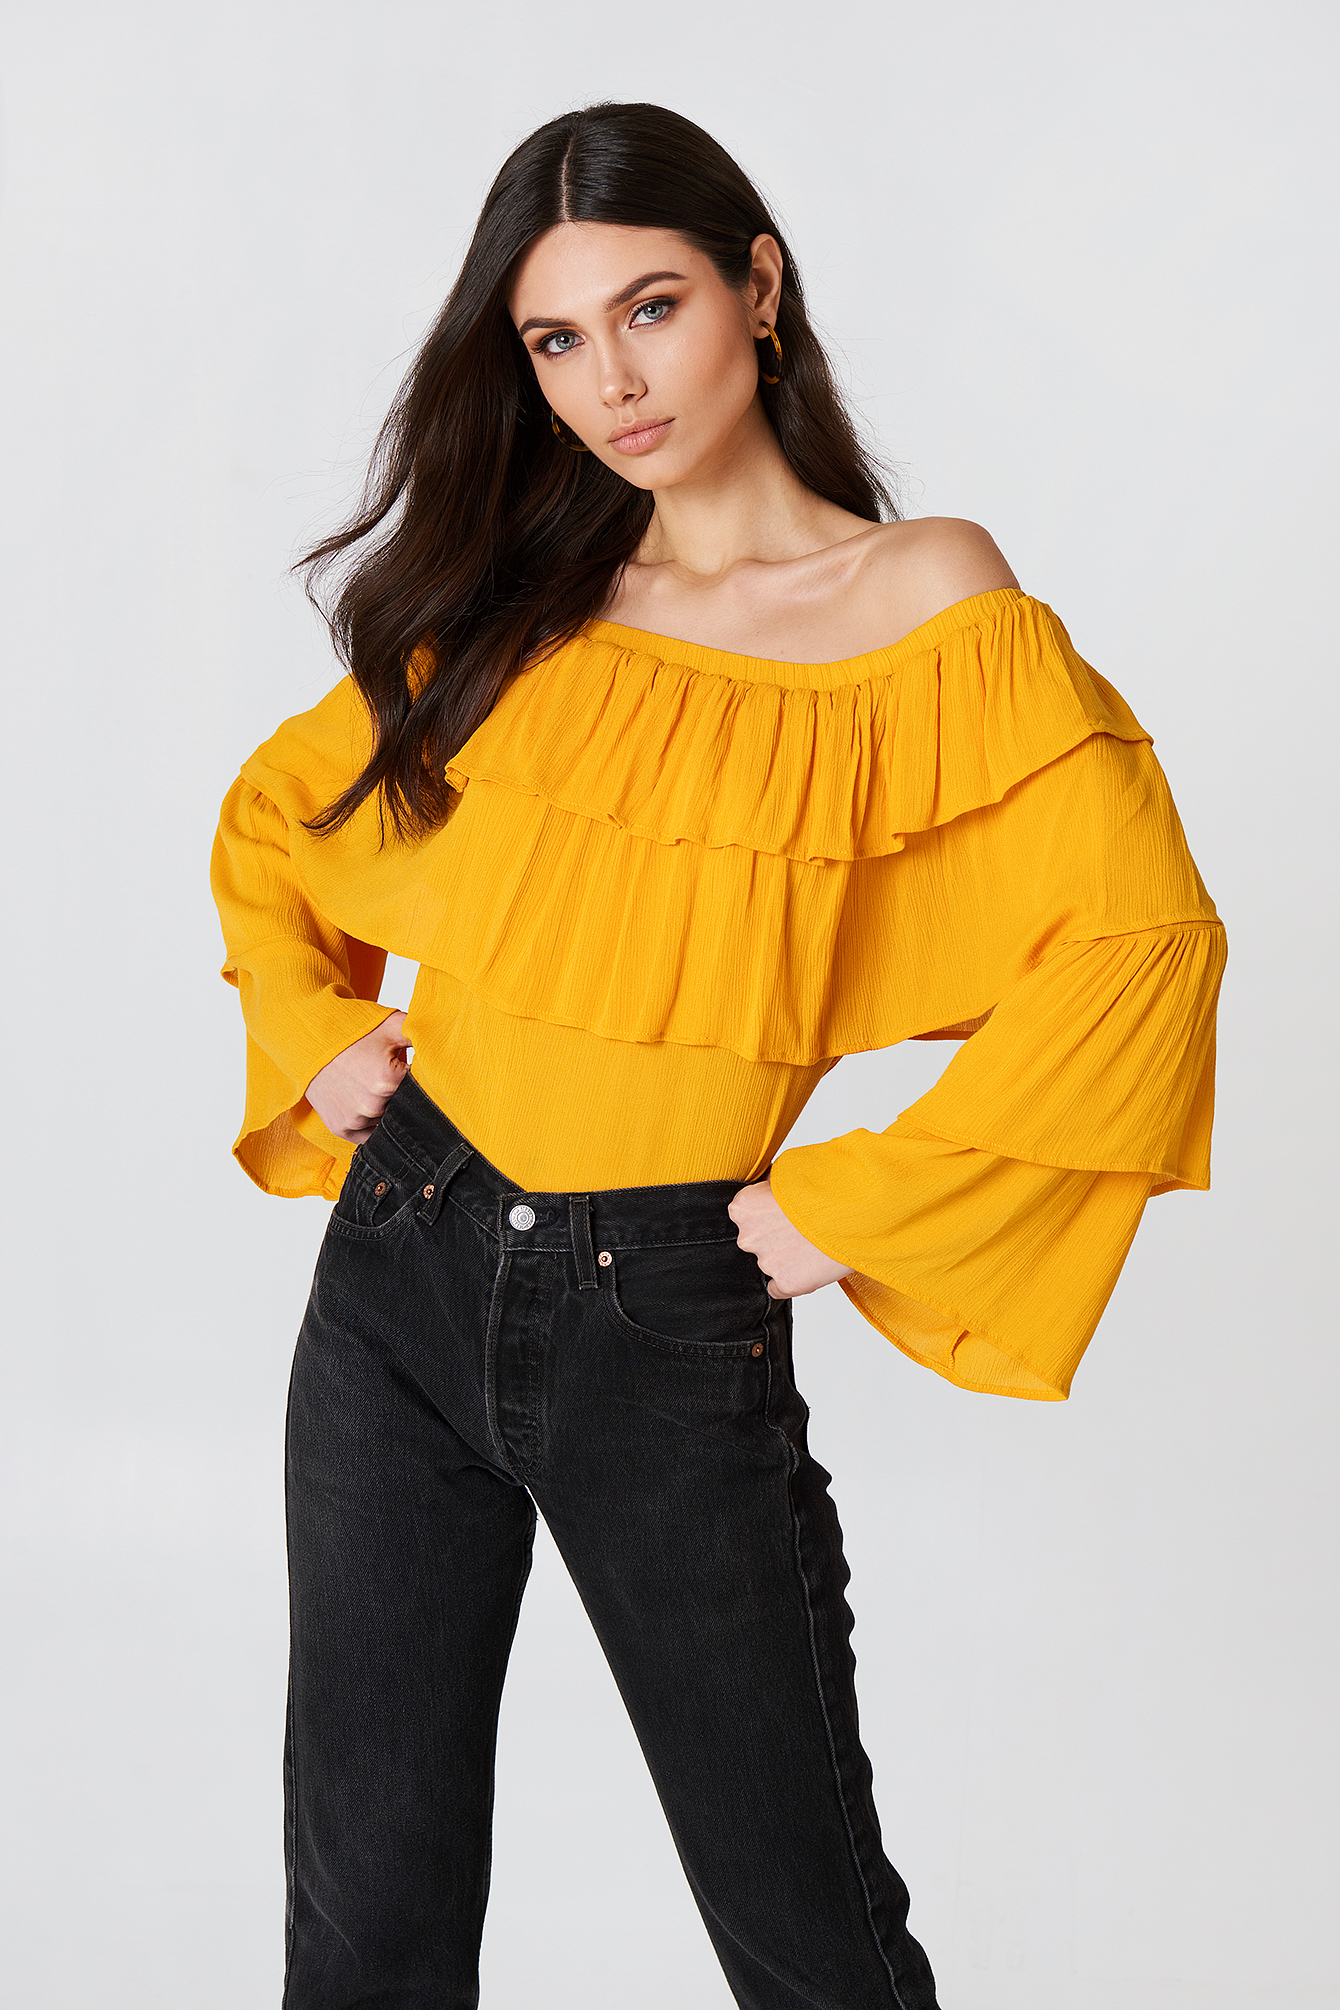 josefin ekström for na-kd -  Off Shoulder Ruffle Top - Orange